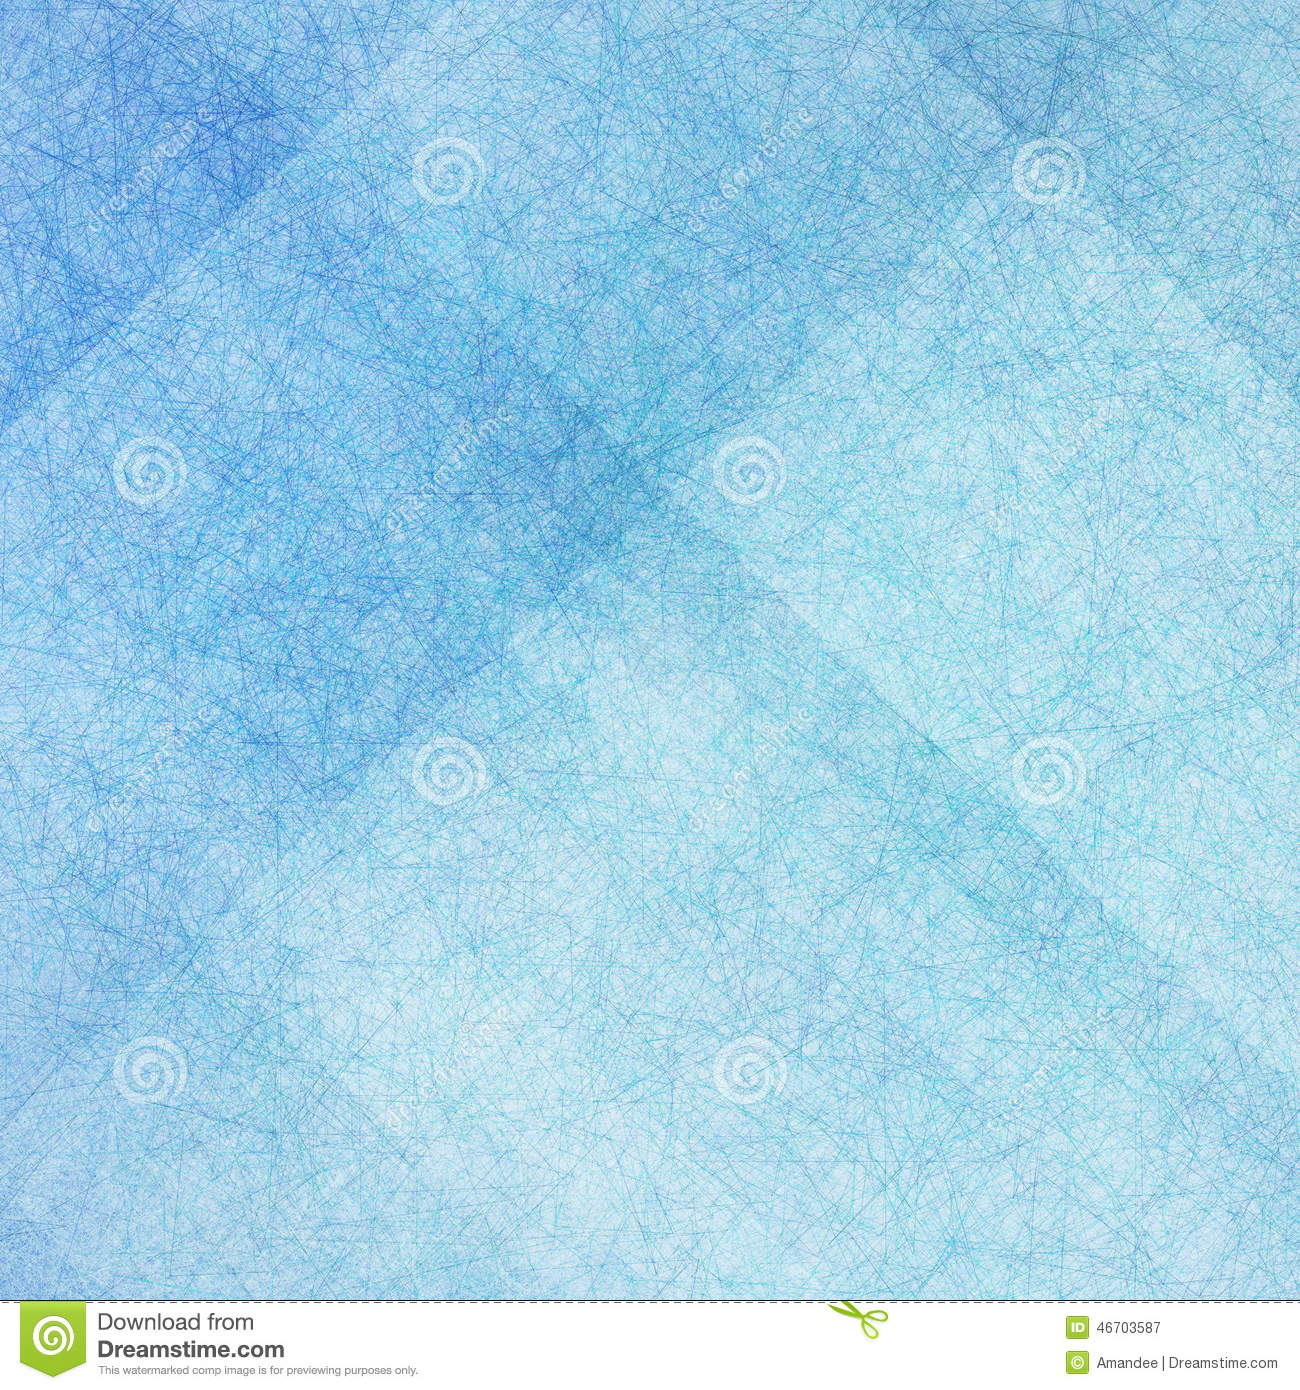 Line Texture Background : Abstract blue background with fine detailed line texture